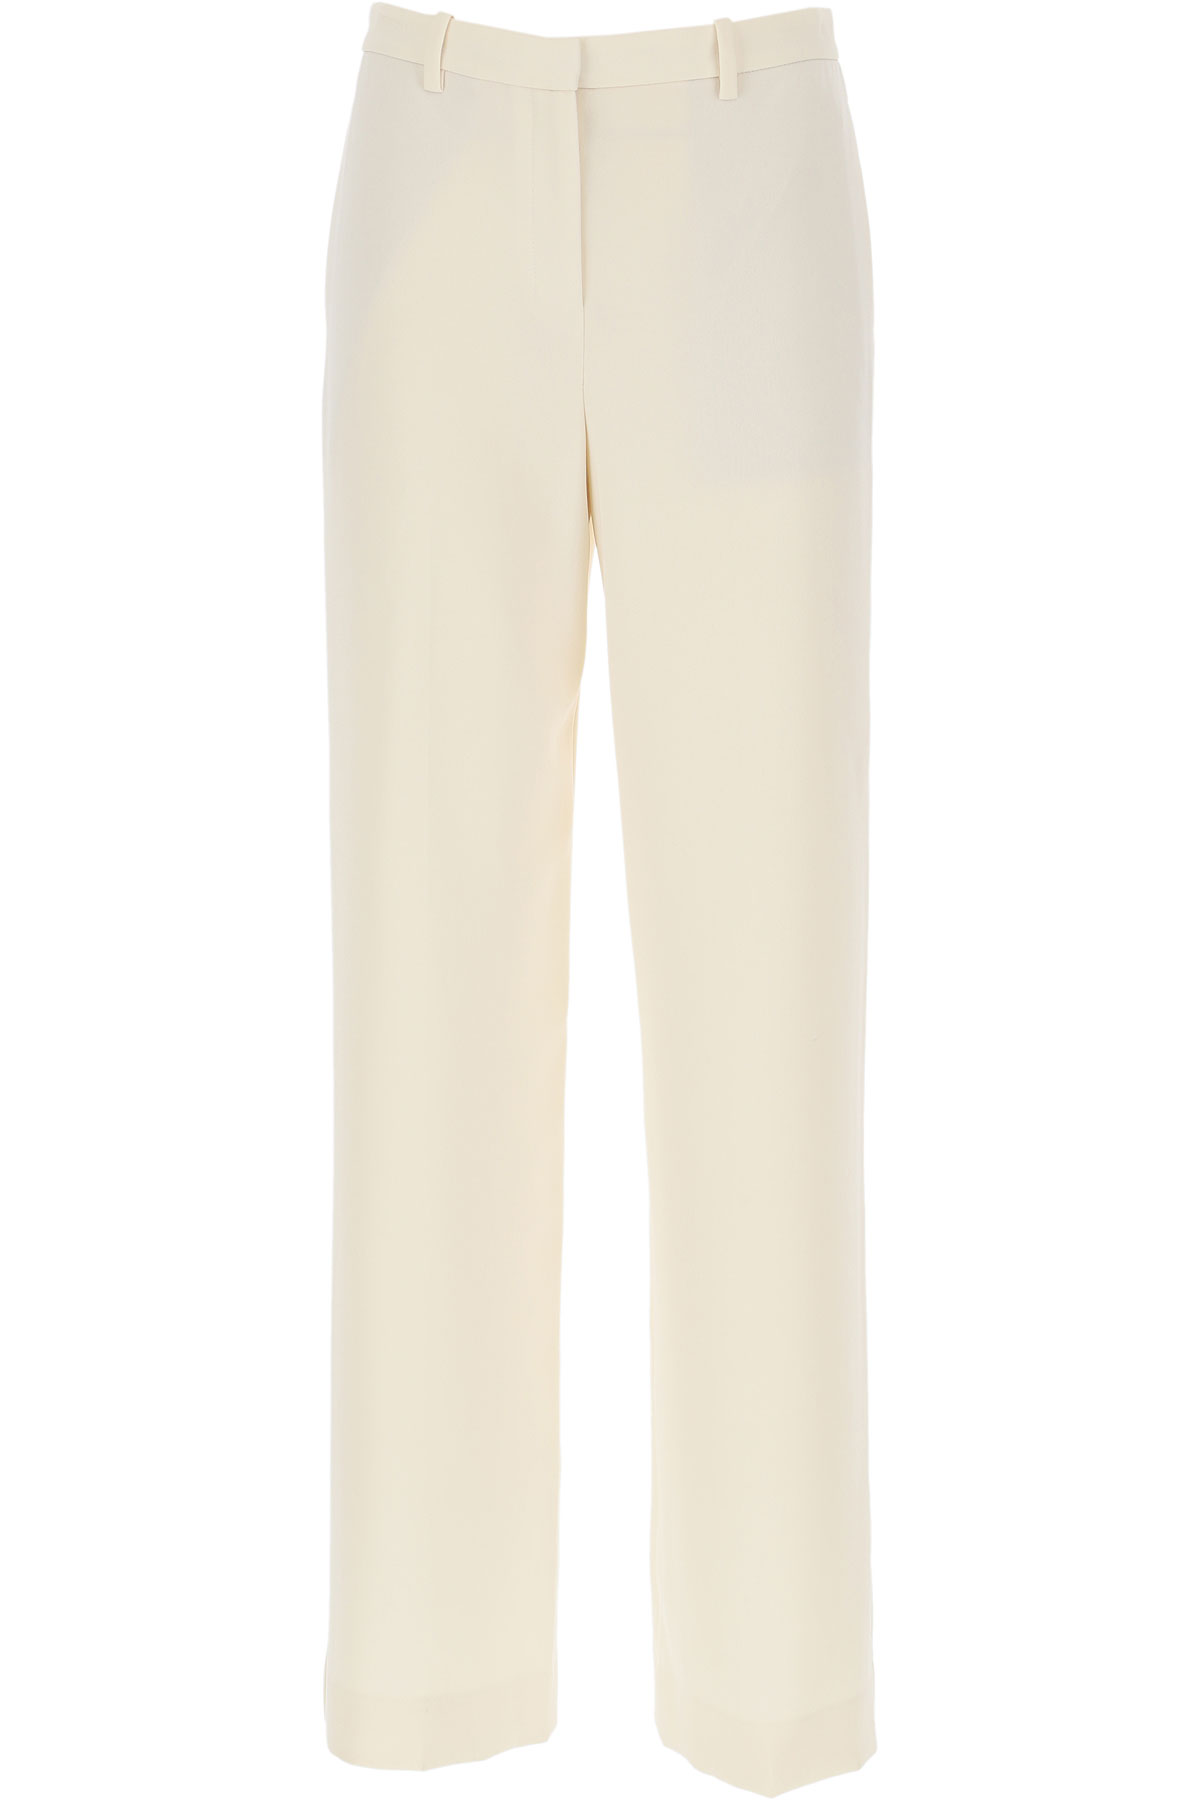 Theory Pants for Women On Sale, Rice, Triacetate, 2019, 4 6